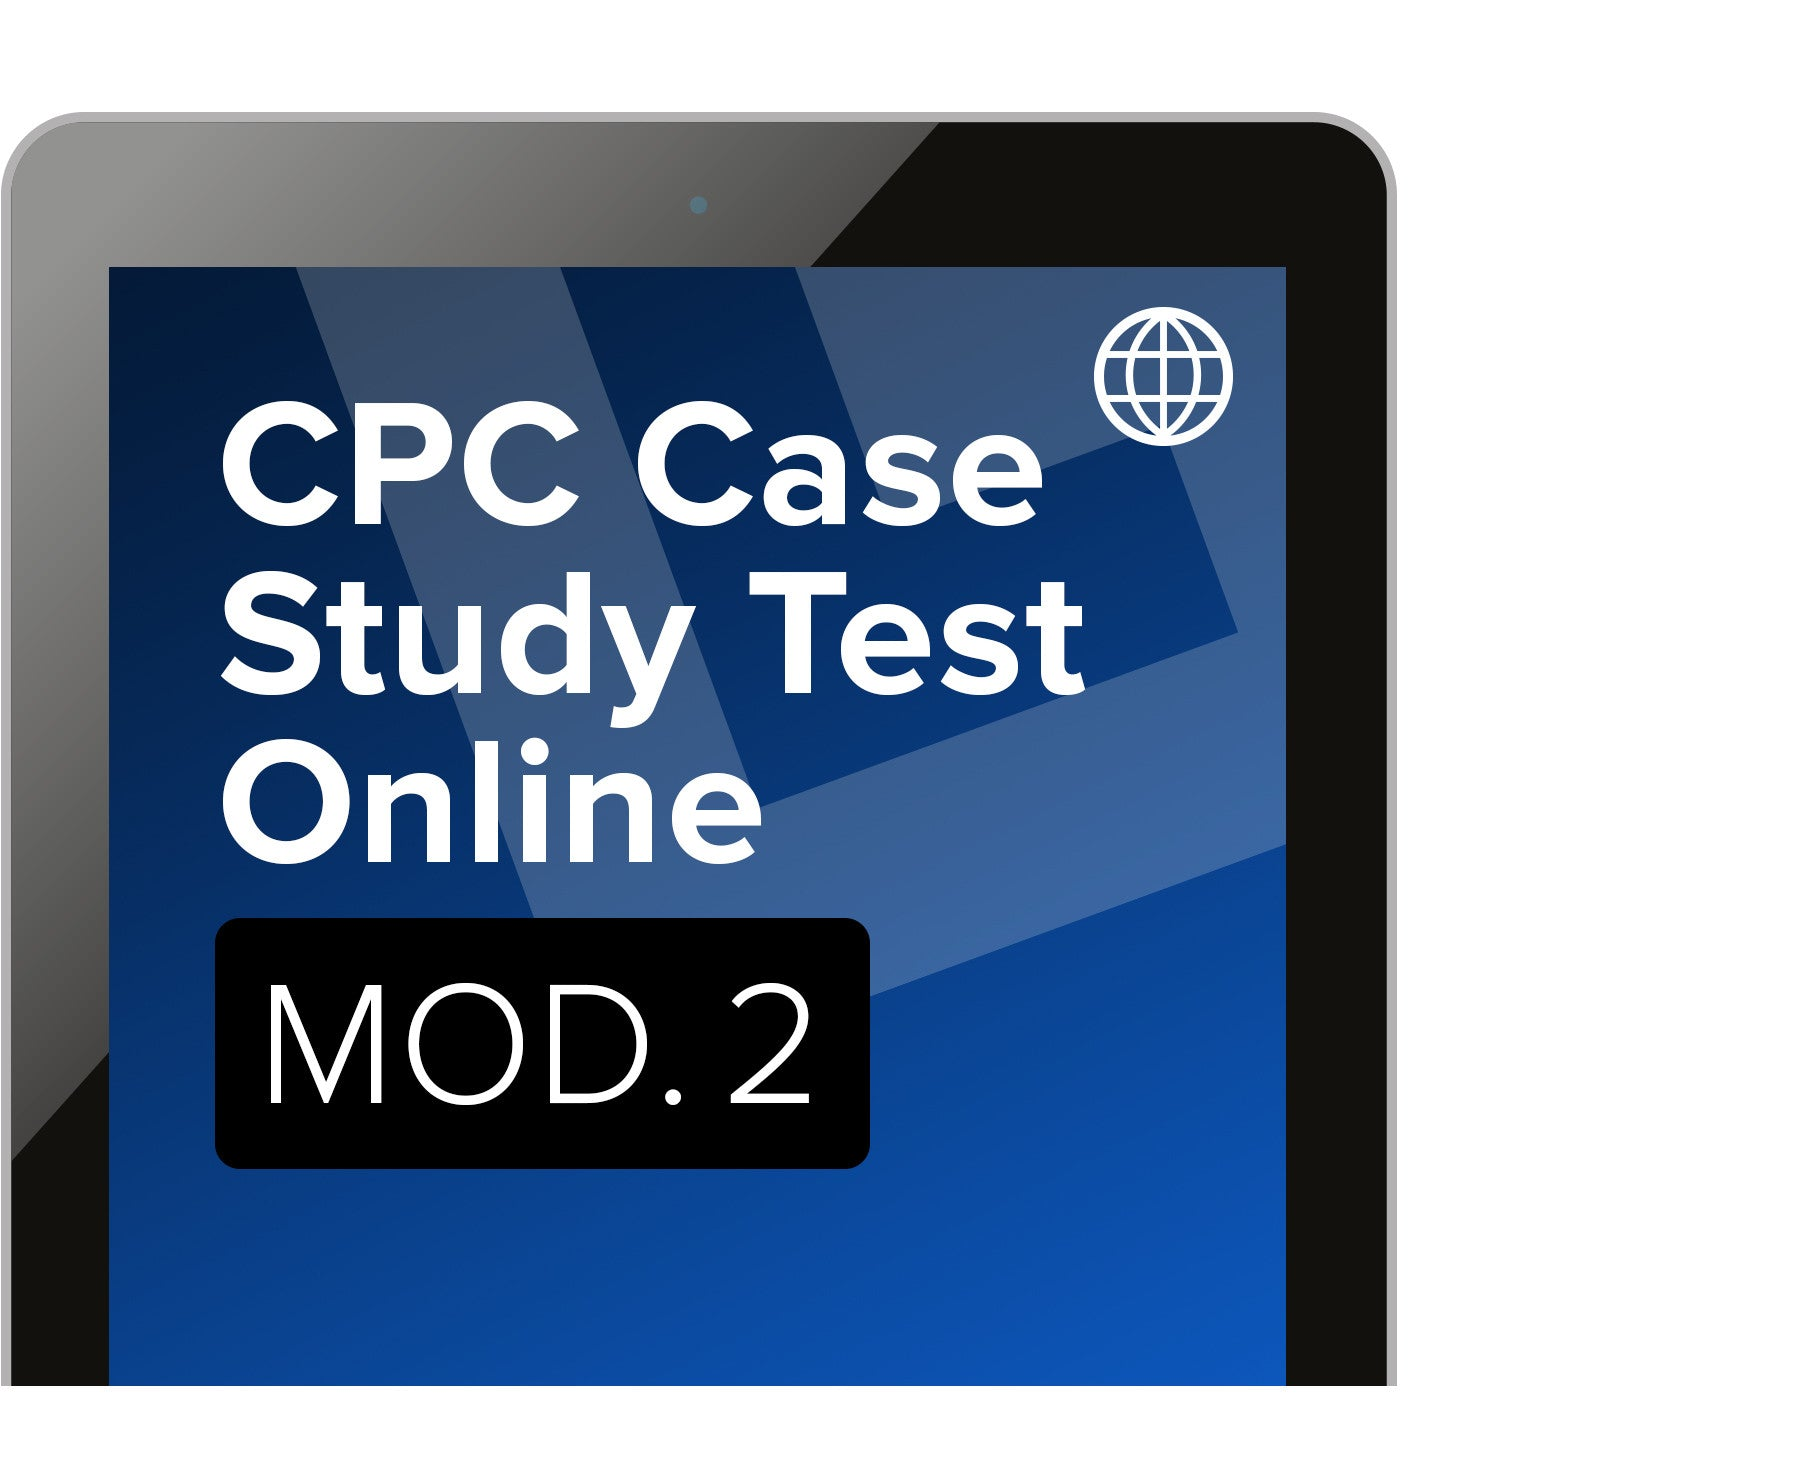 pcv cpc case study questions and answers